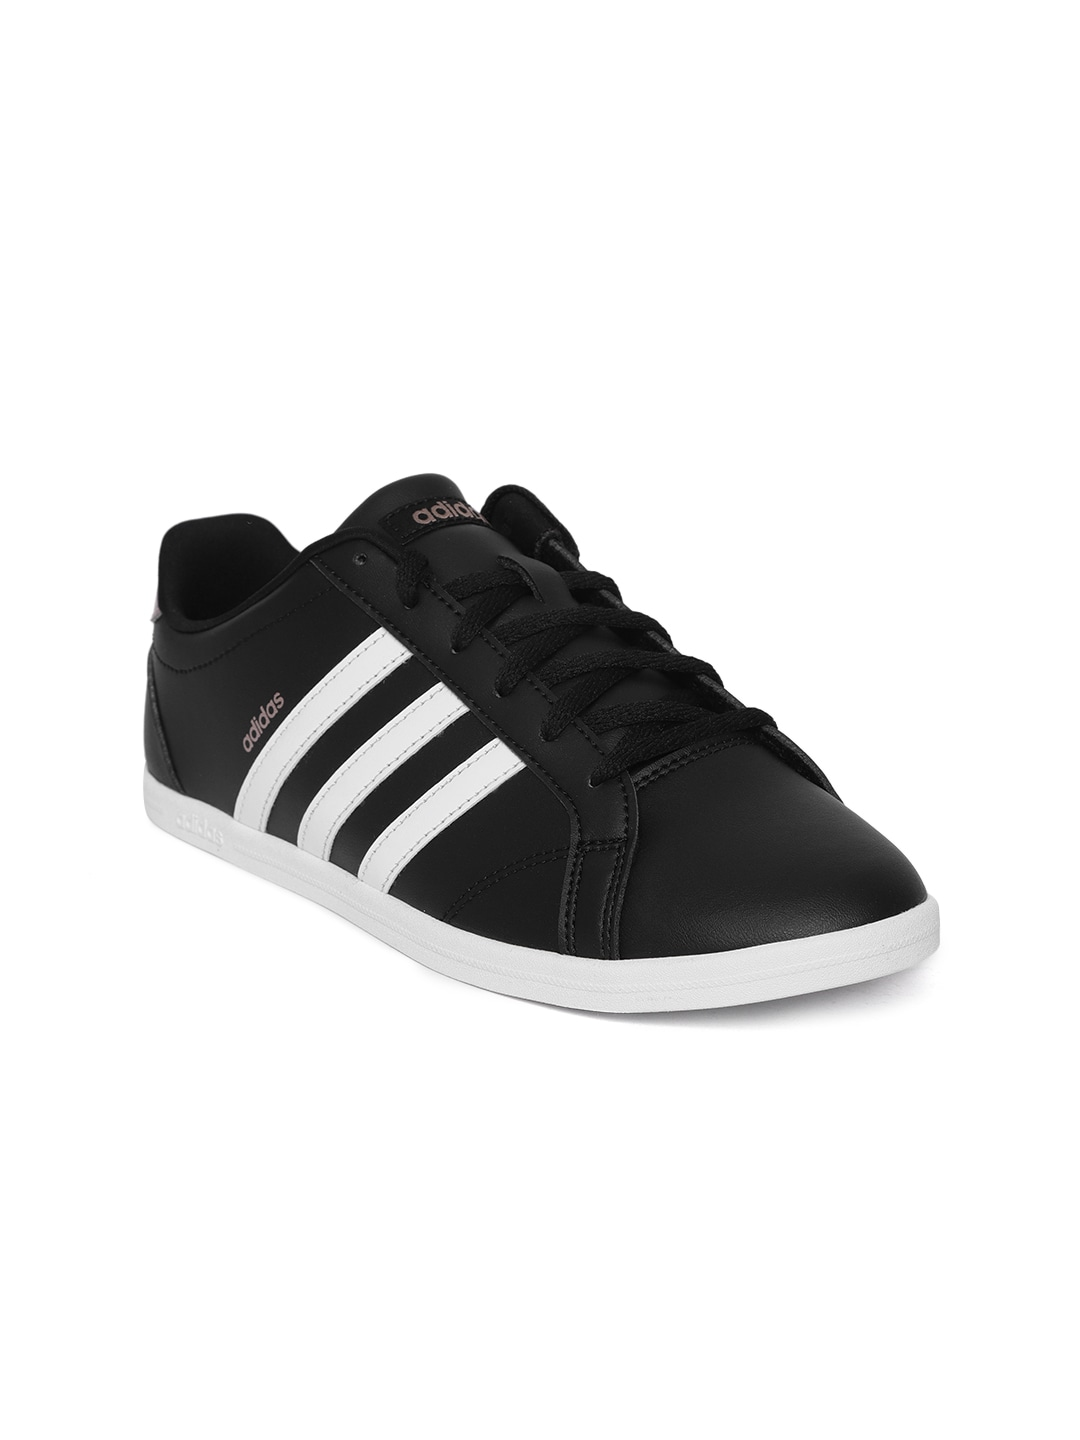 new style 08729 d49ad Adidas Tennis Shoes  Buy Adidas Tennis Shoes Online in India at Best Price